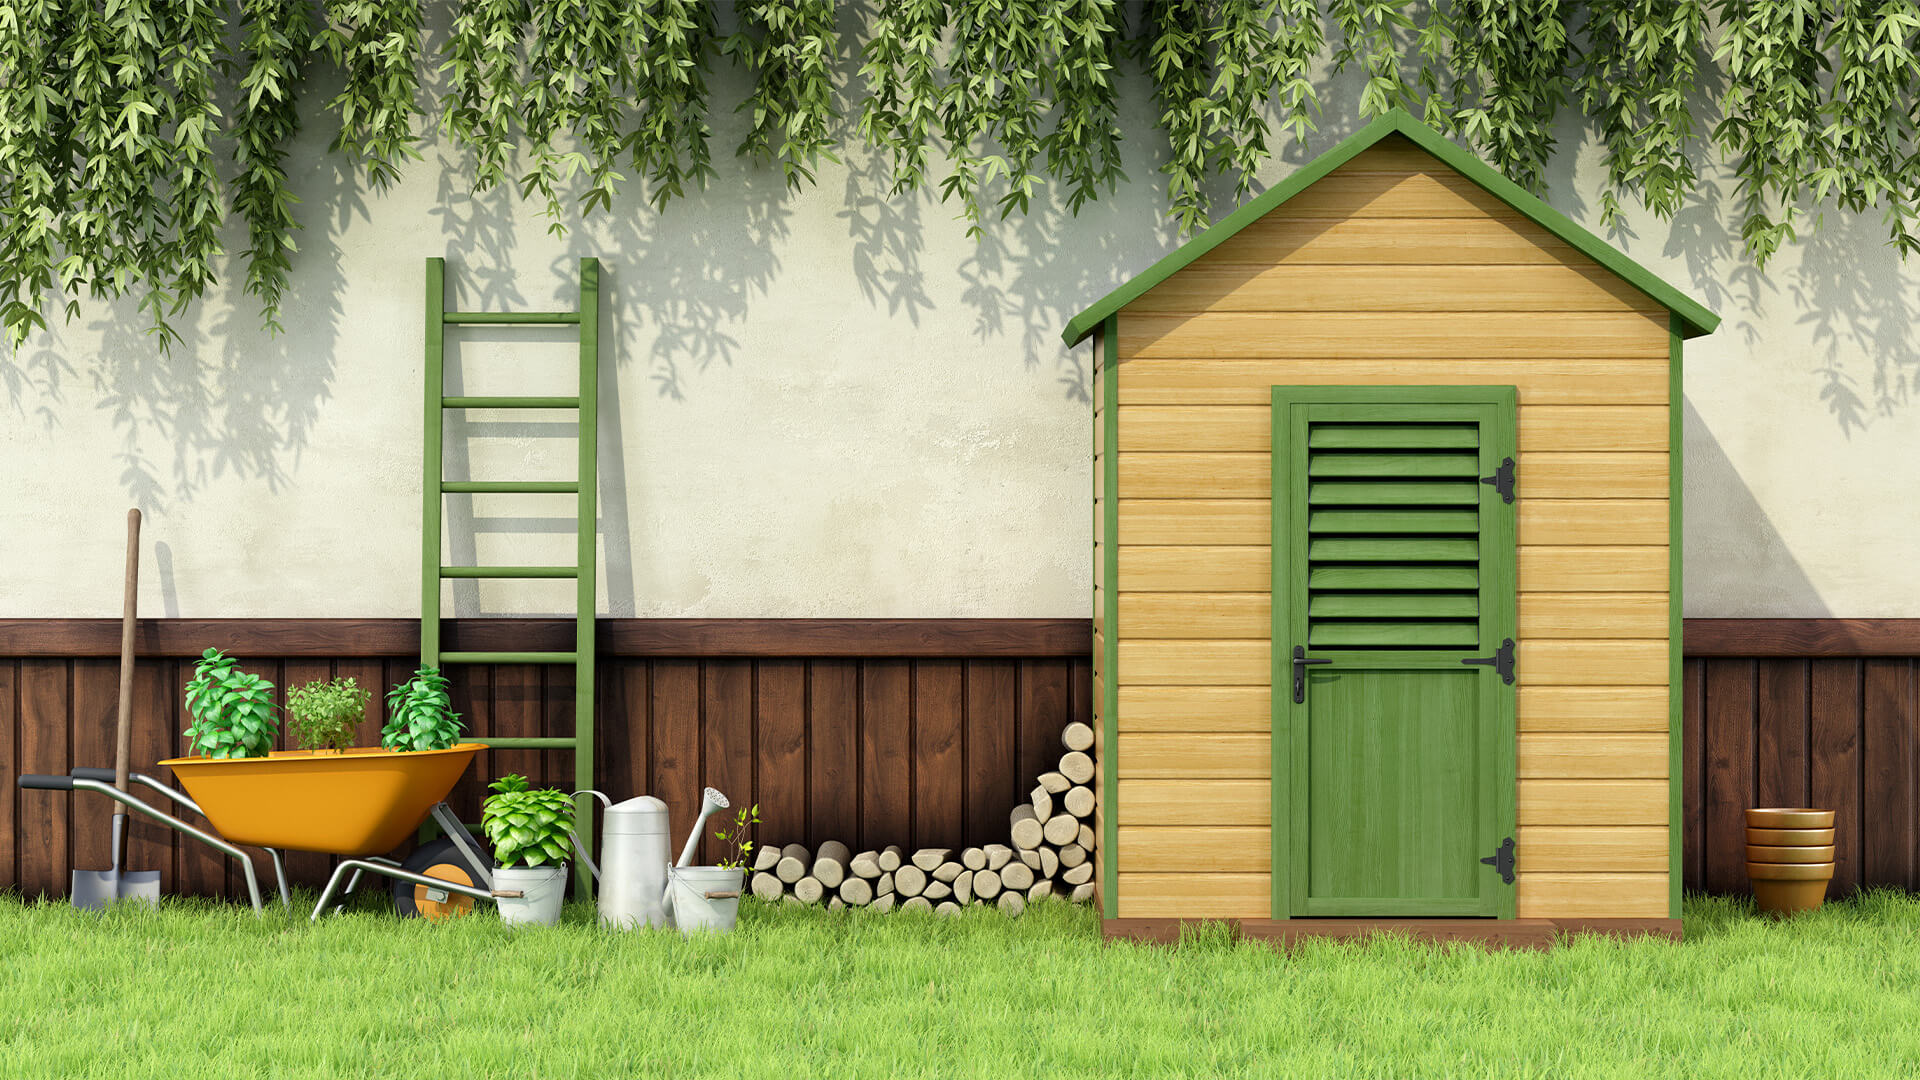 Green and beige garden shed with ivy, a ladder, wheelbarrow, and potted plants